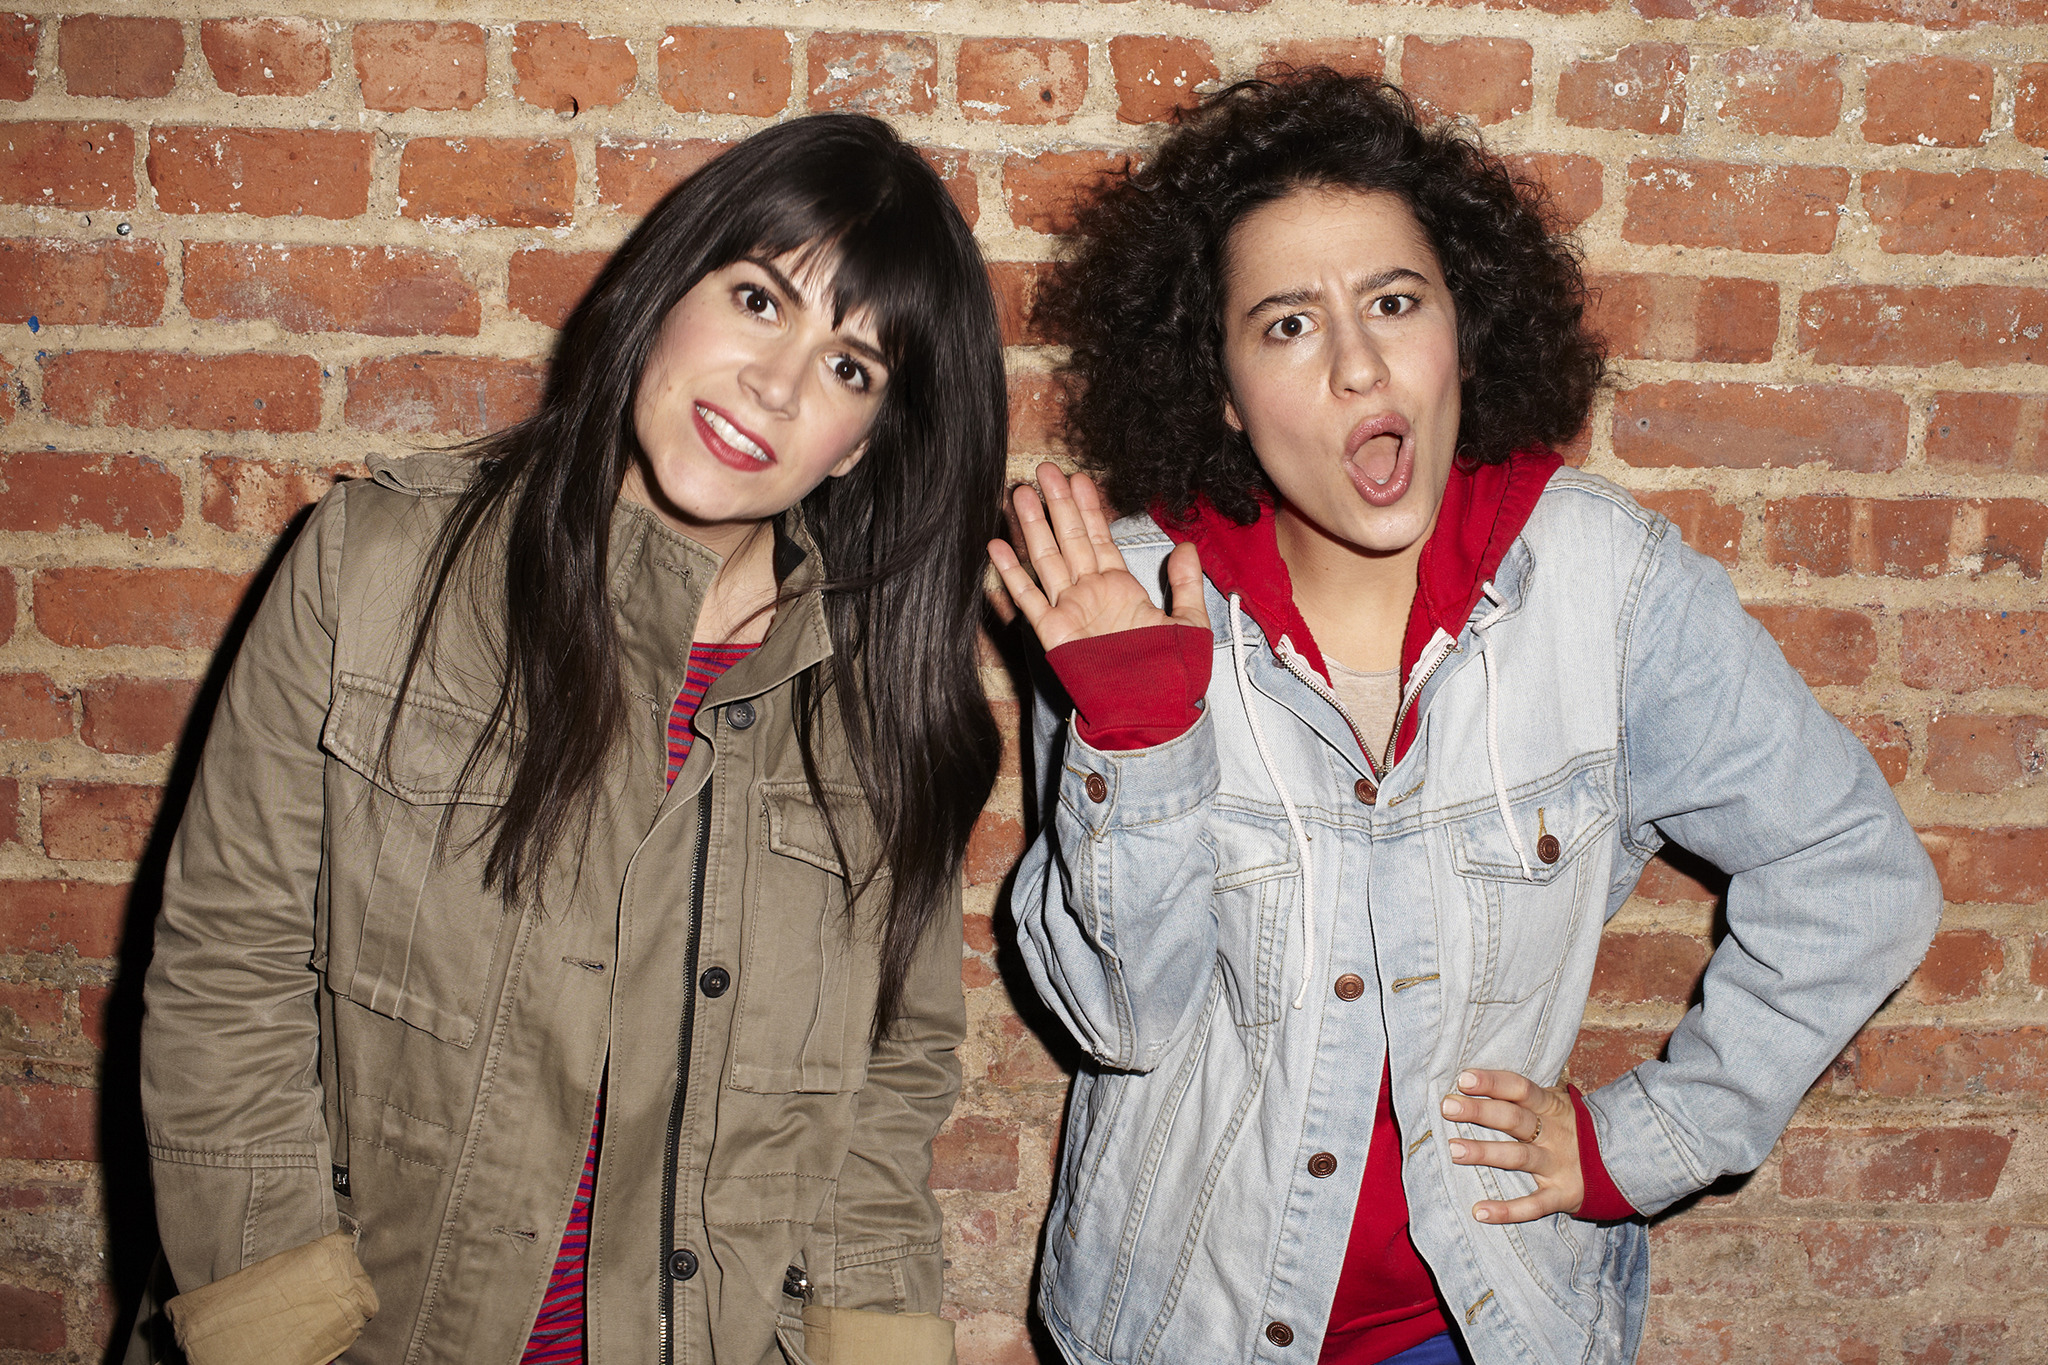 Abbi Jacobson and Ilana Glazer of Broad City